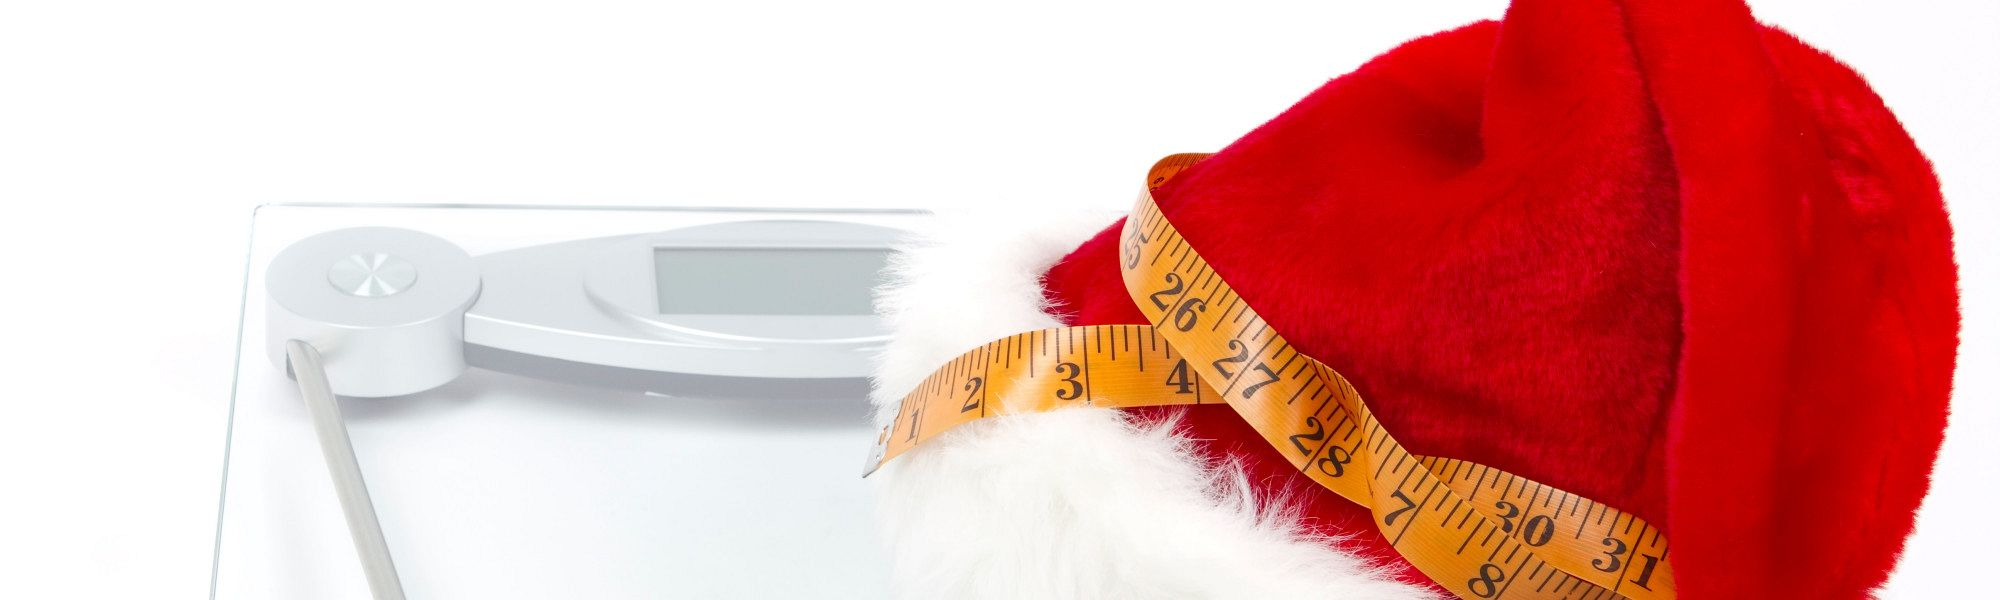 FuelIgniteThrive - 5 EASY TIPS TO AVOID THAT HOLIDAY 10LBS